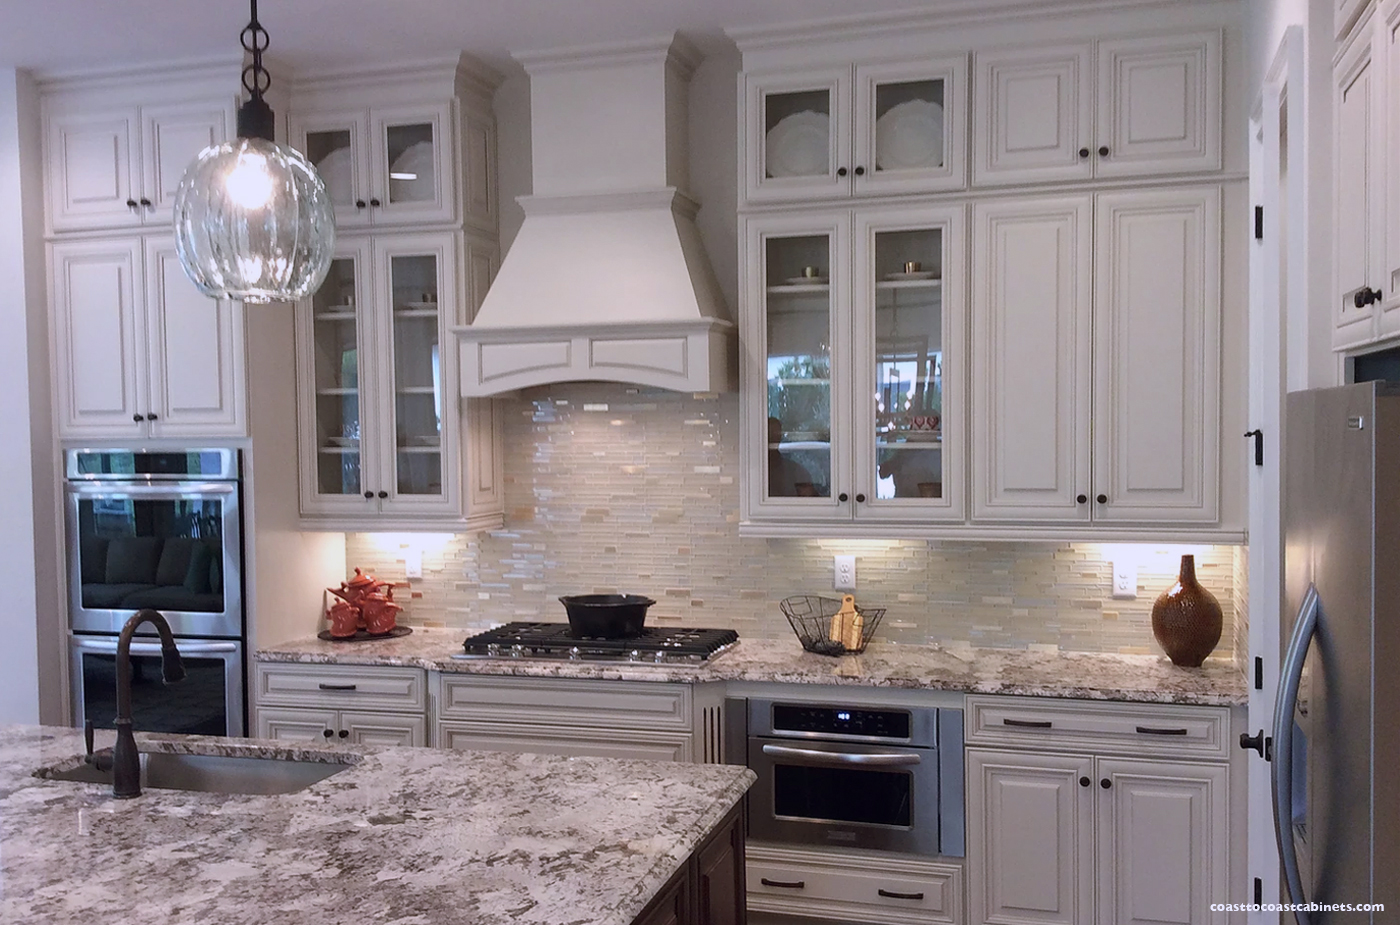 Project 4: White Cabinet KItchens - COAST TO COAST CABINETS